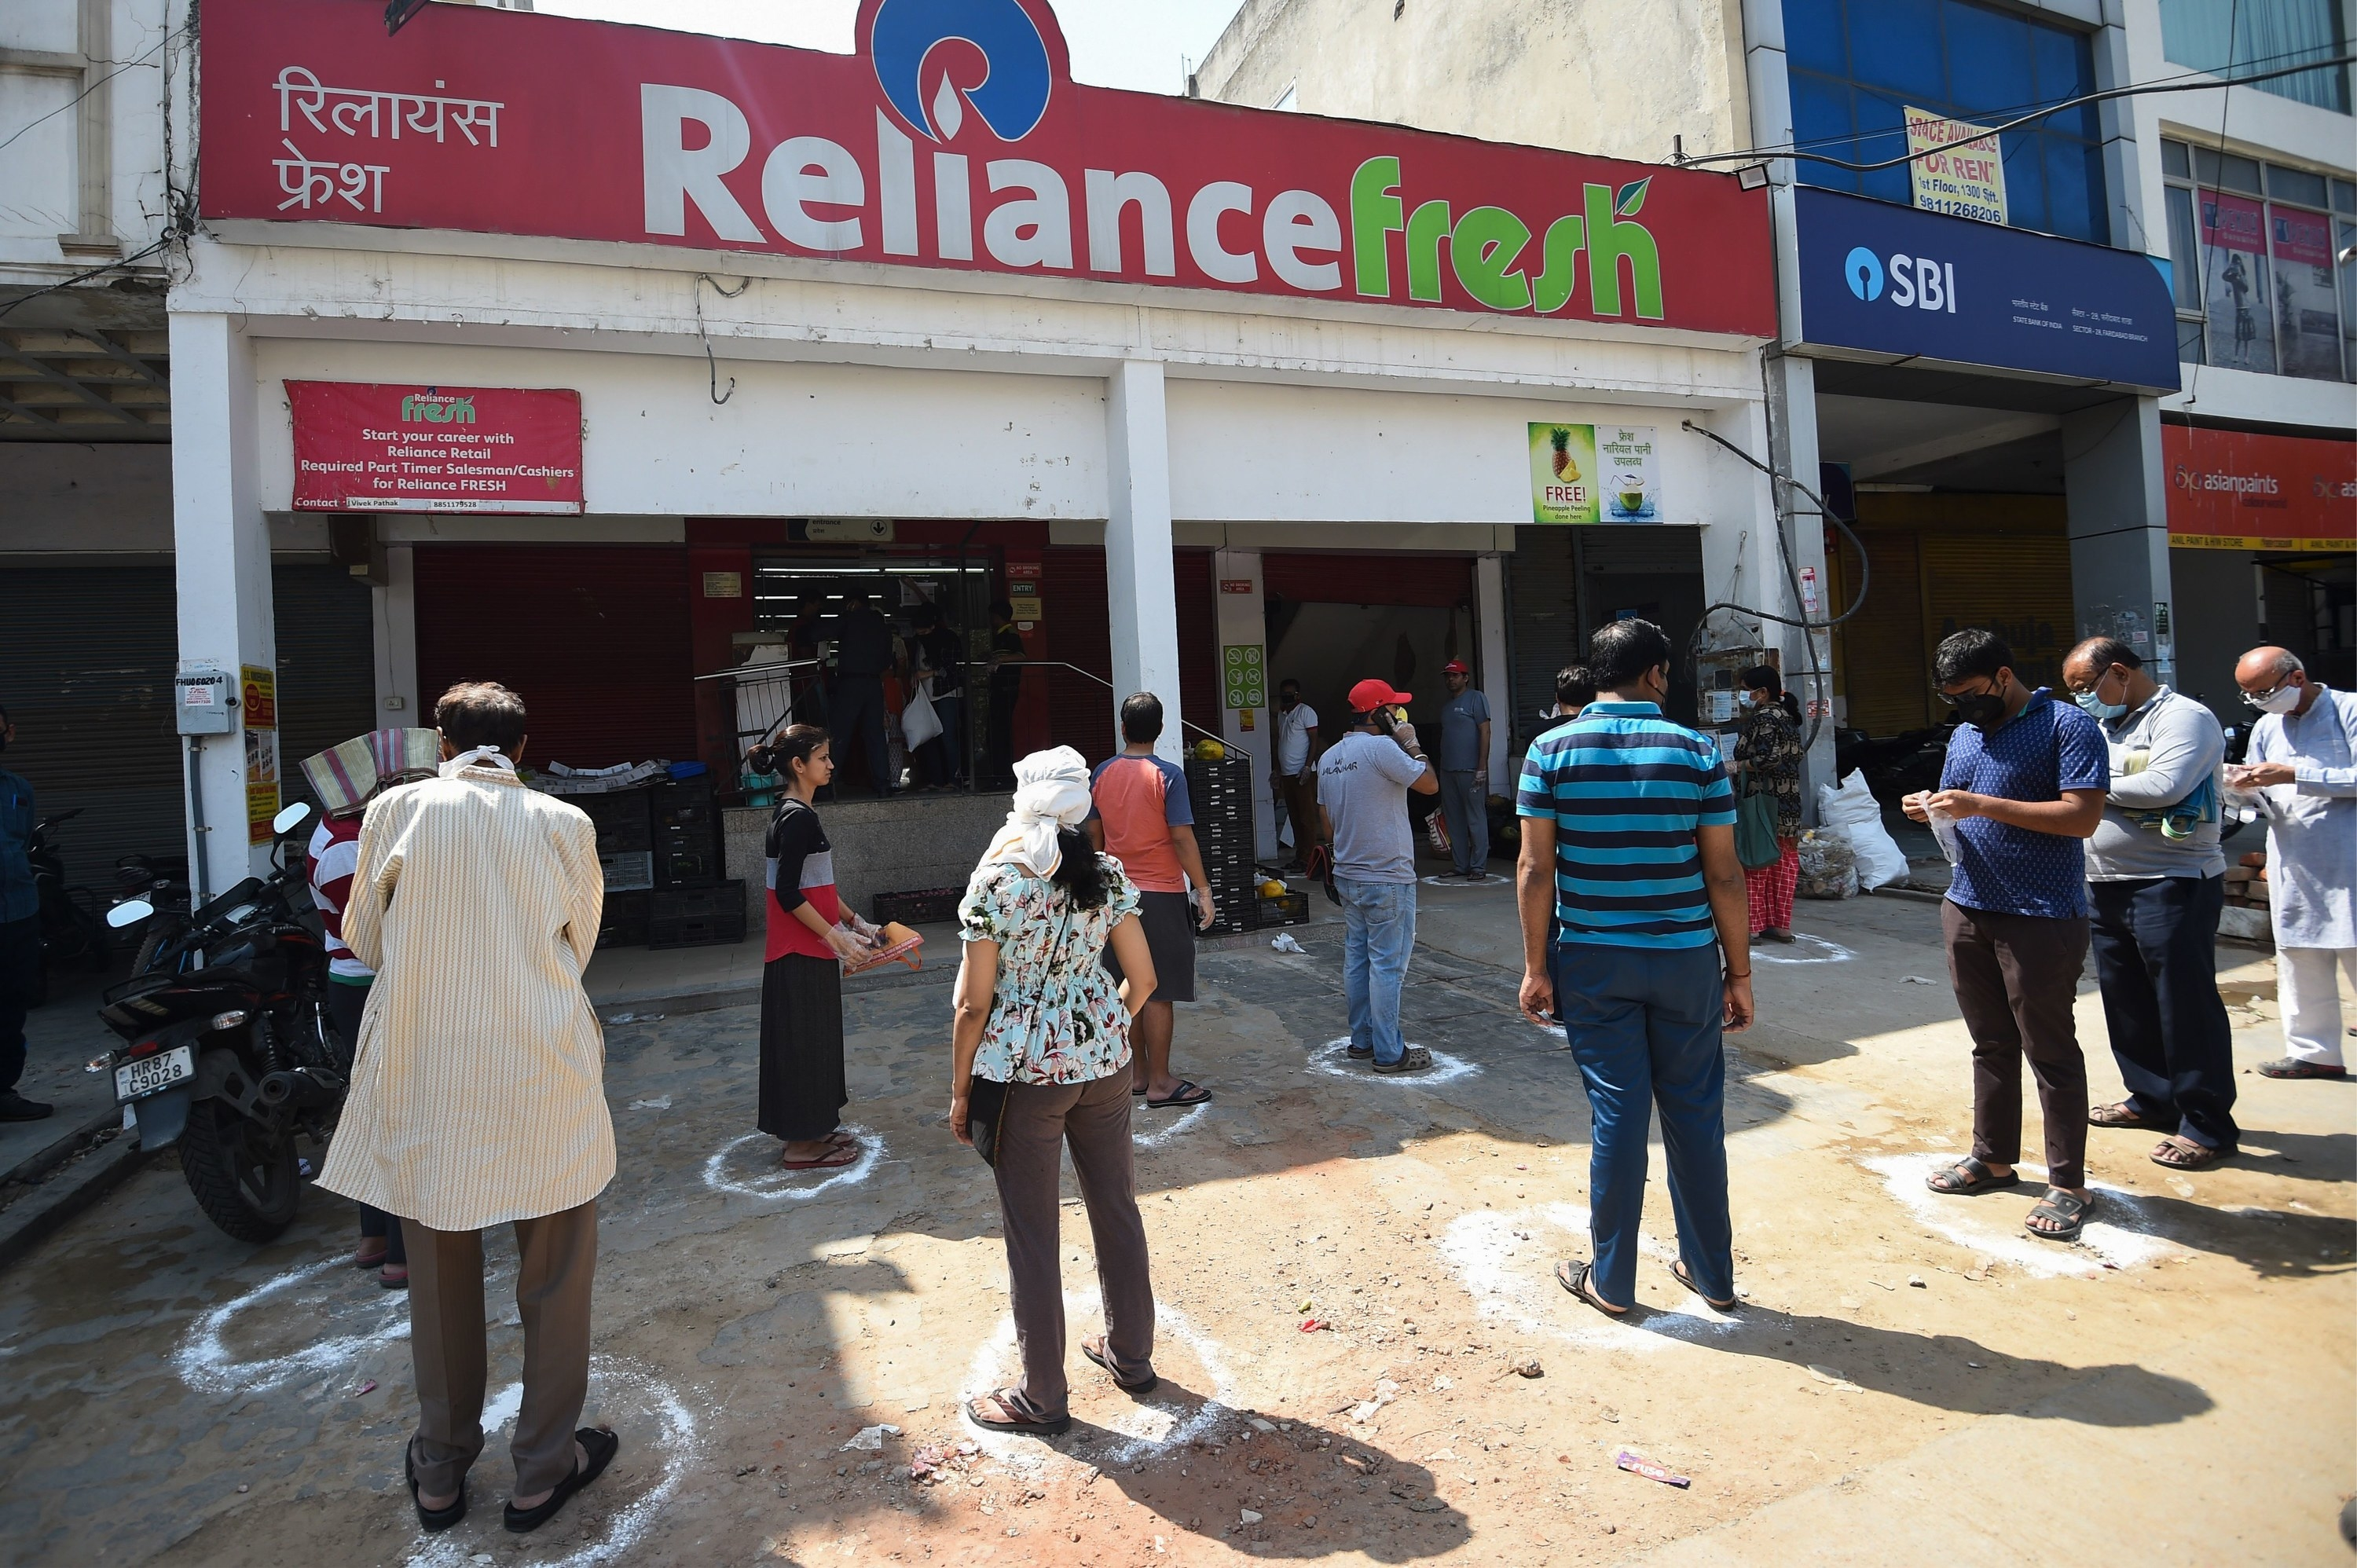 The line outside of a Reliance Fresh supermarket